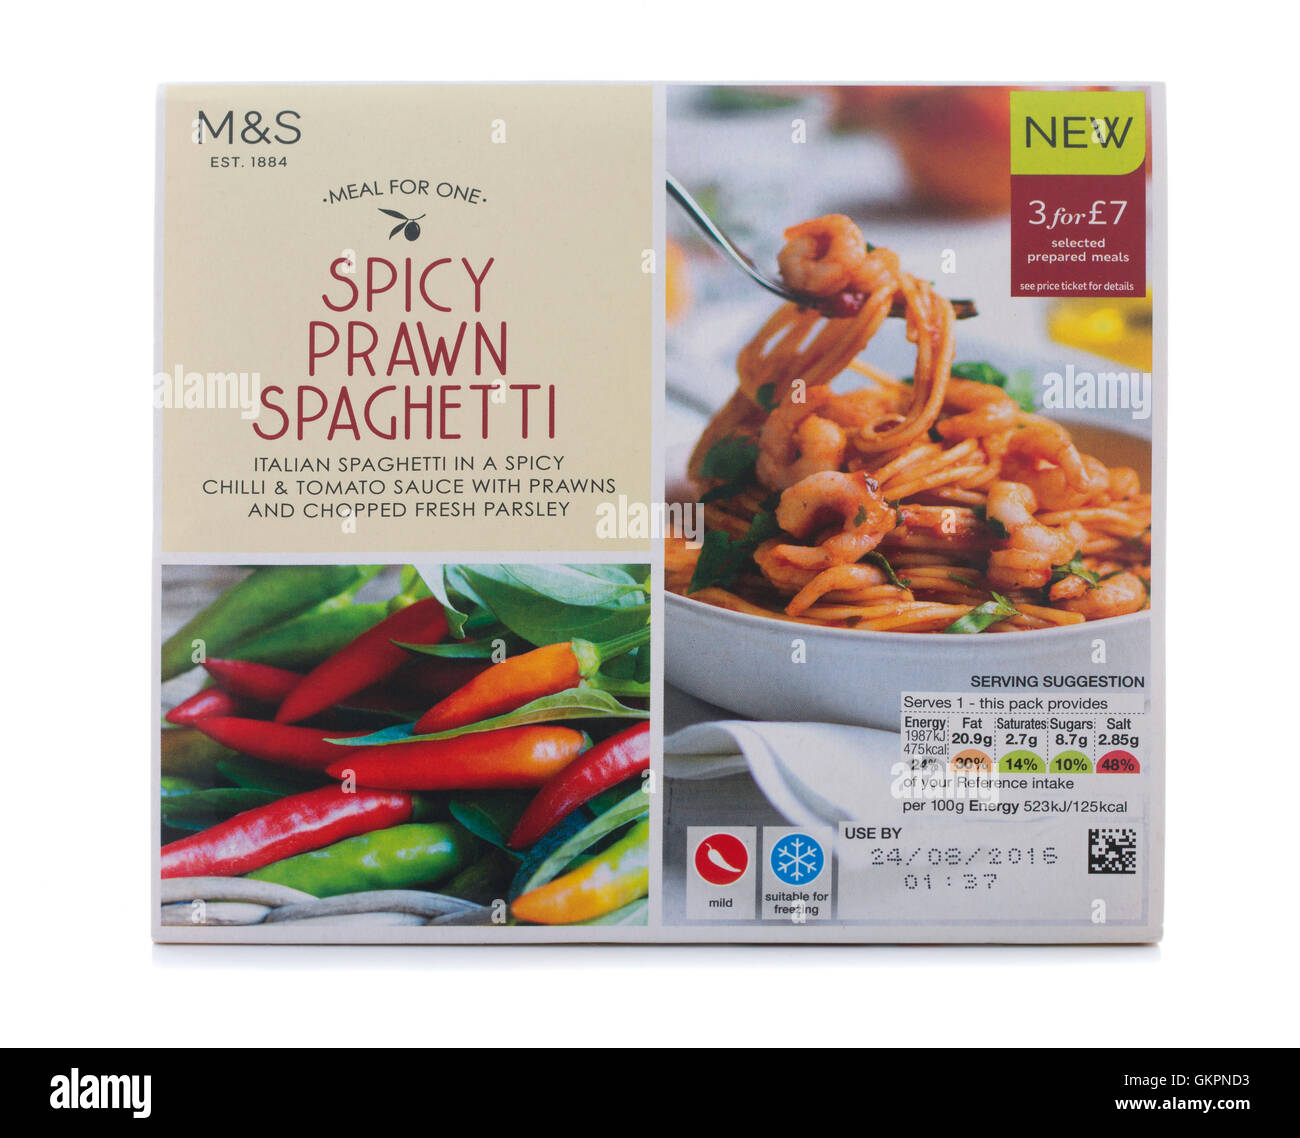 Packet of Spicy Prawn Spaghetti Meal For One on a White Background - Stock Image